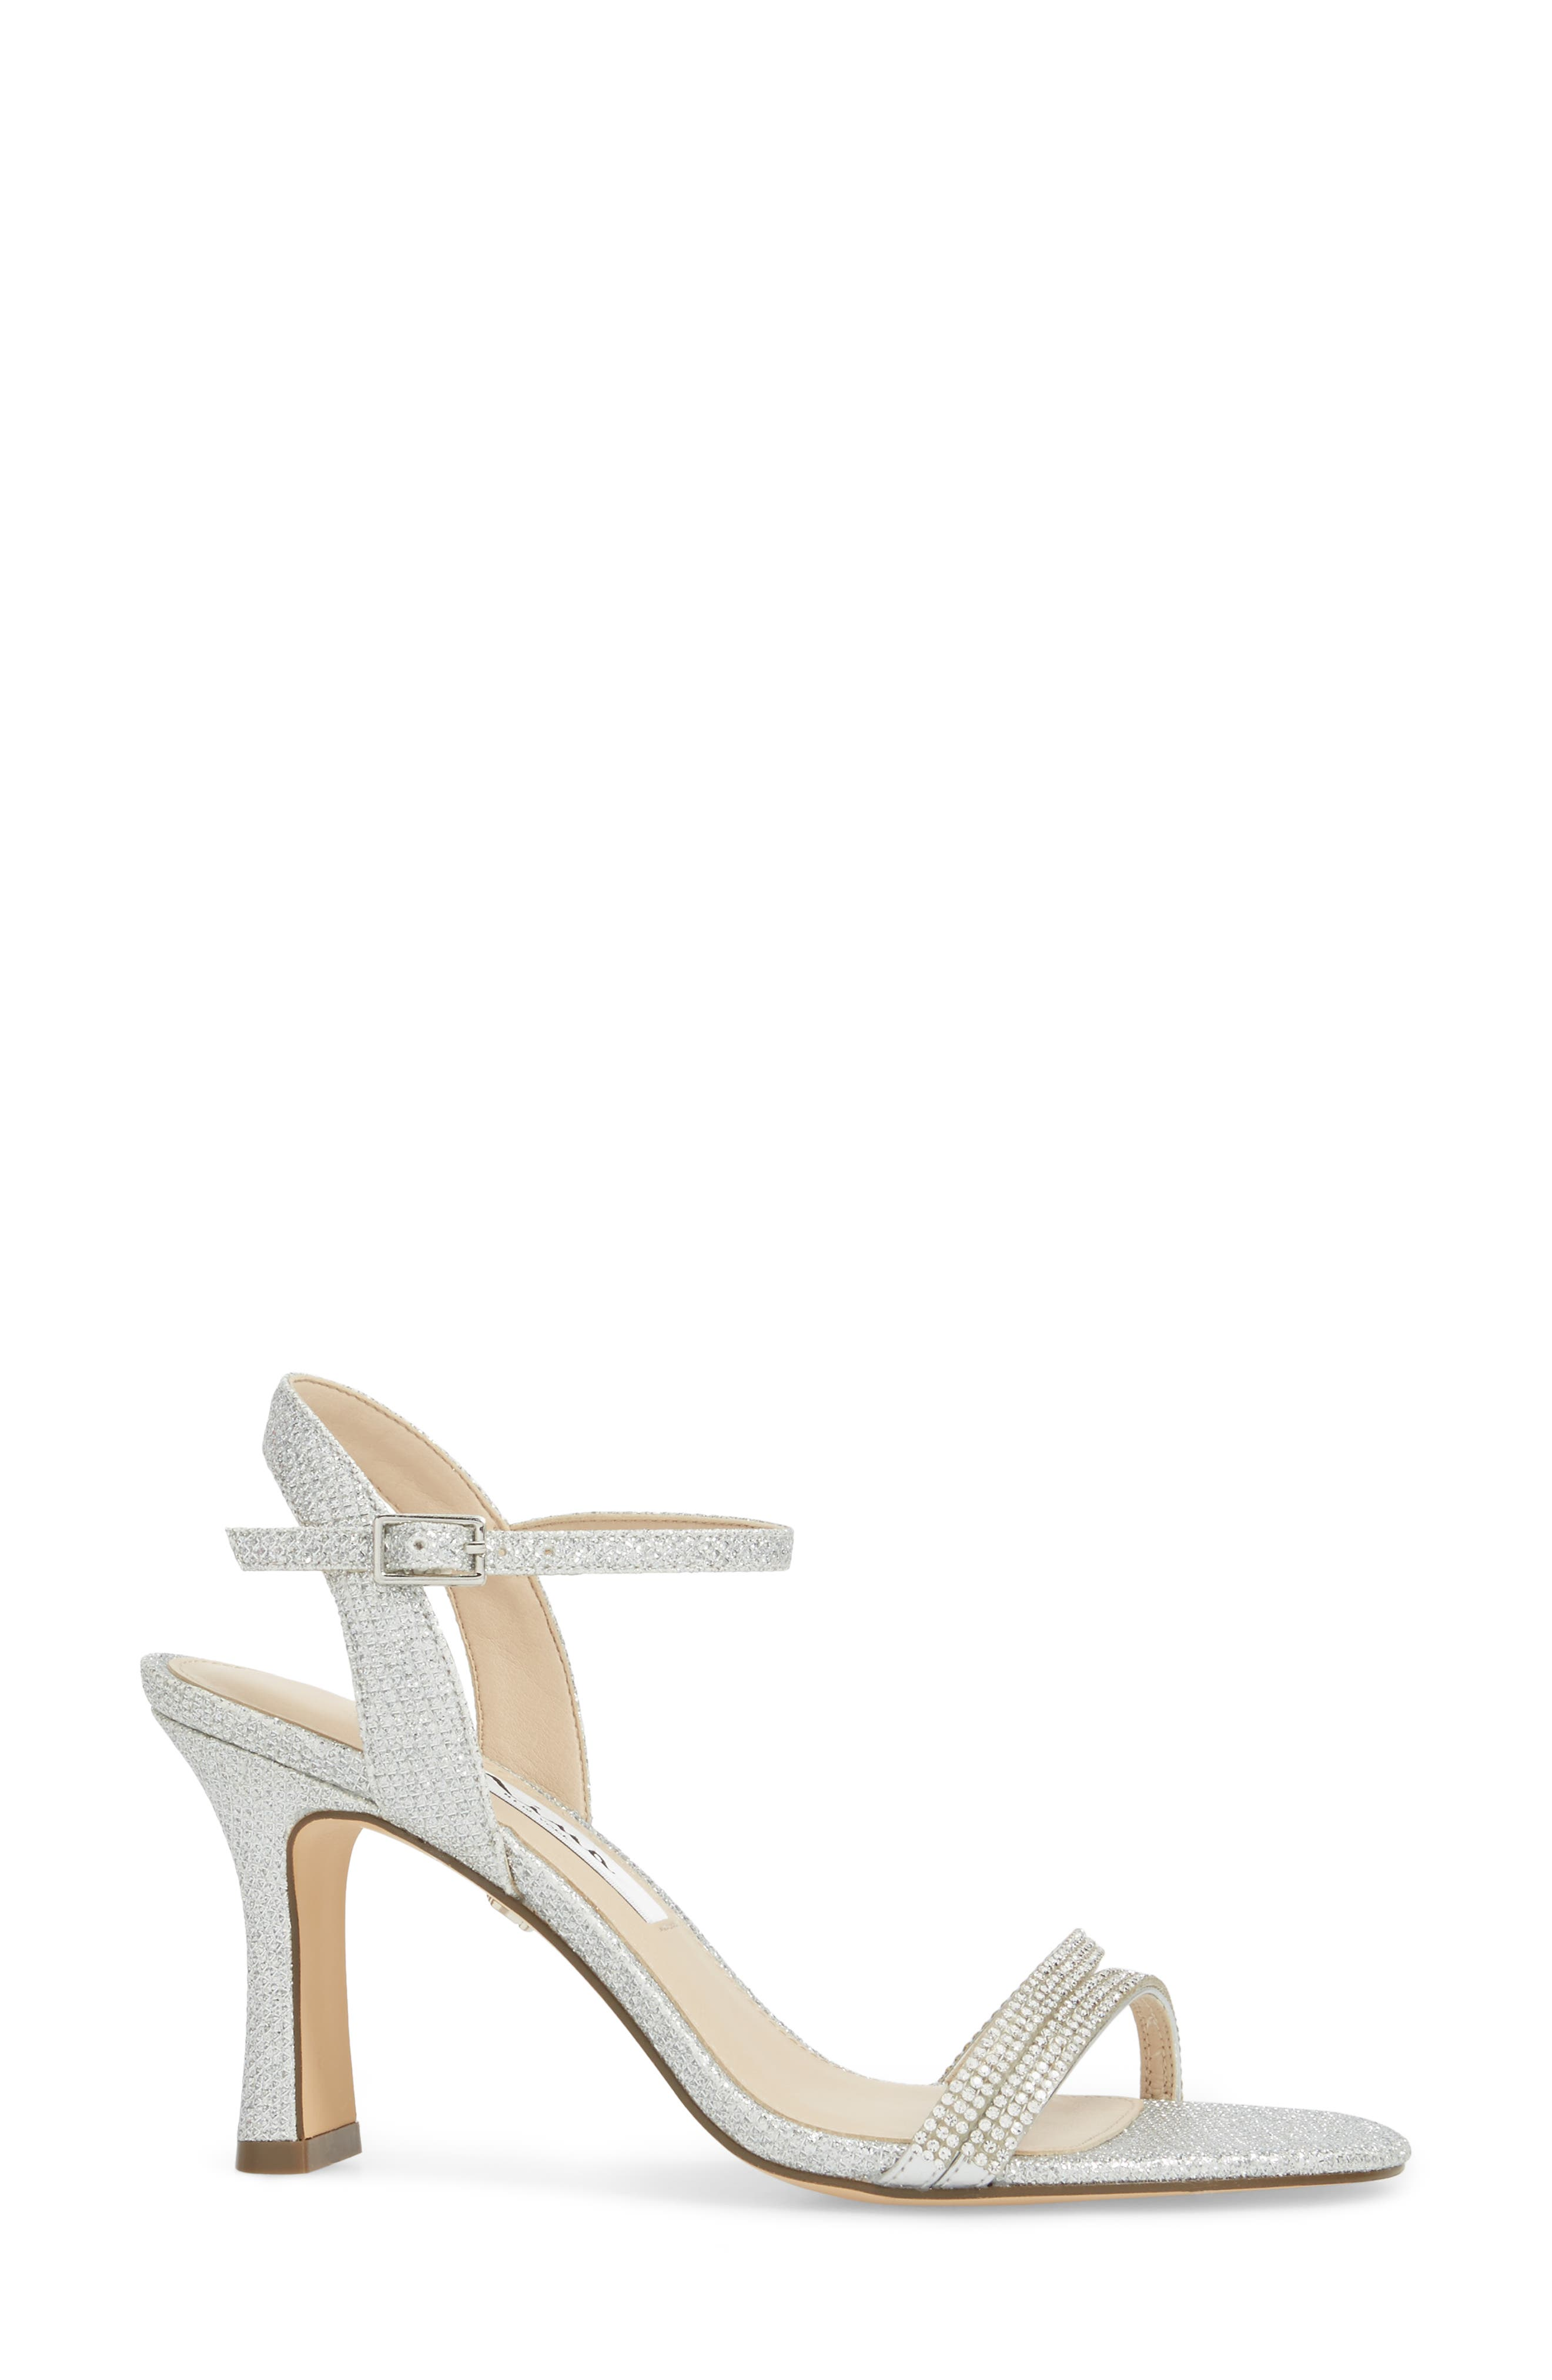 Avalon Ankle Strap Sandal,                             Alternate thumbnail 3, color,                             Silver Fabric